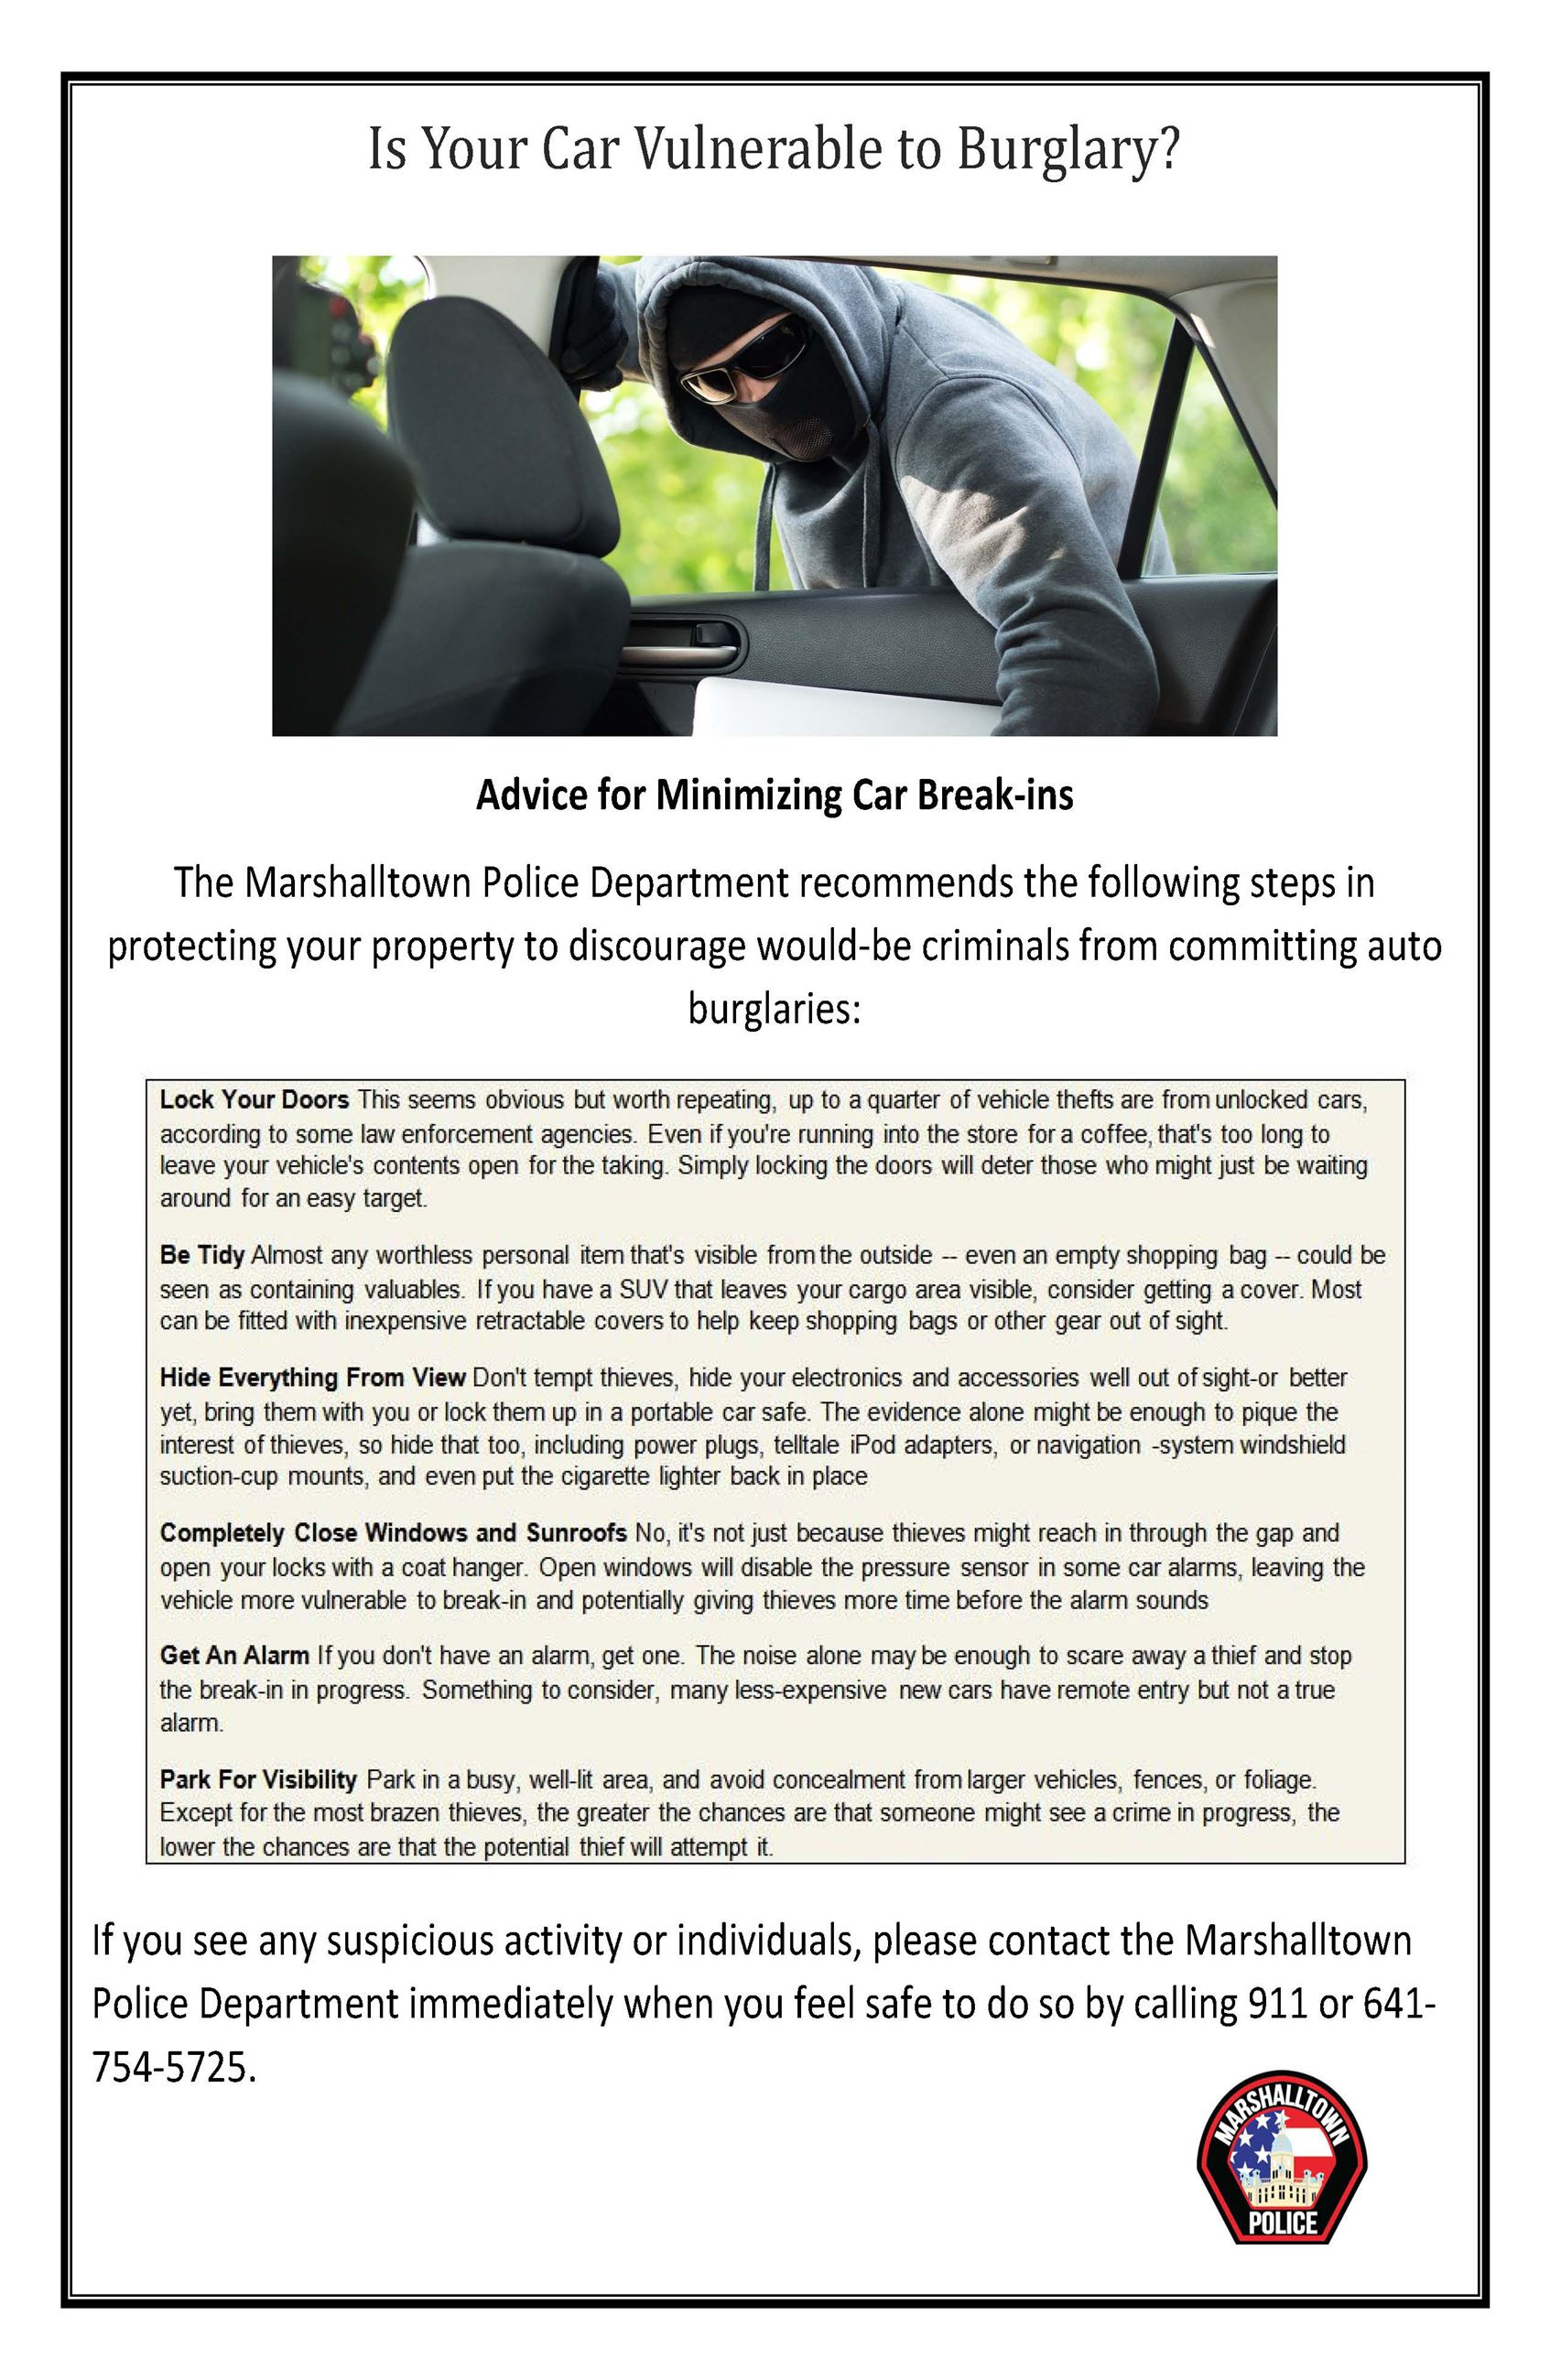 Is Your Car Vulnerable to Burglary 1 1